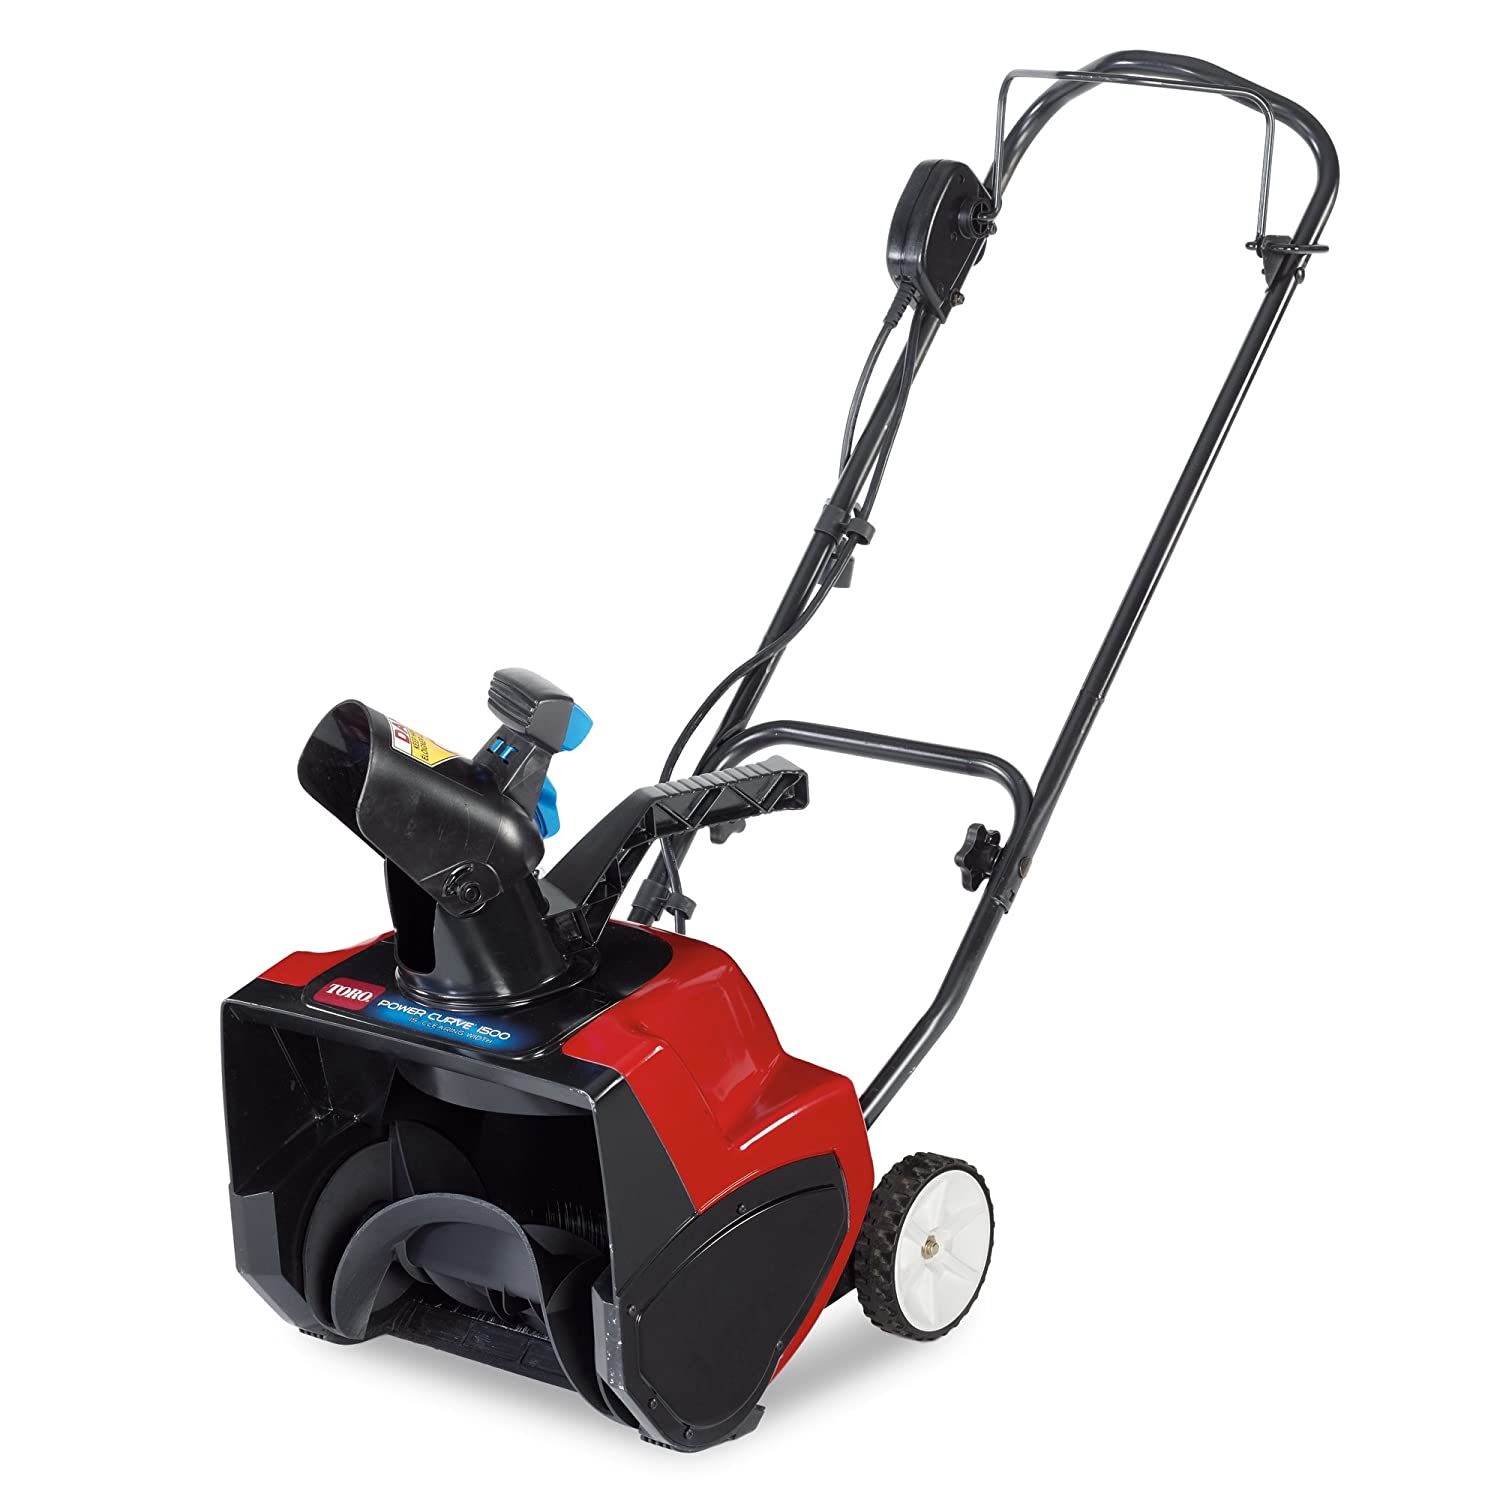 honda snow experiencing hybrid news can en you cant drive t blower blowers the usd